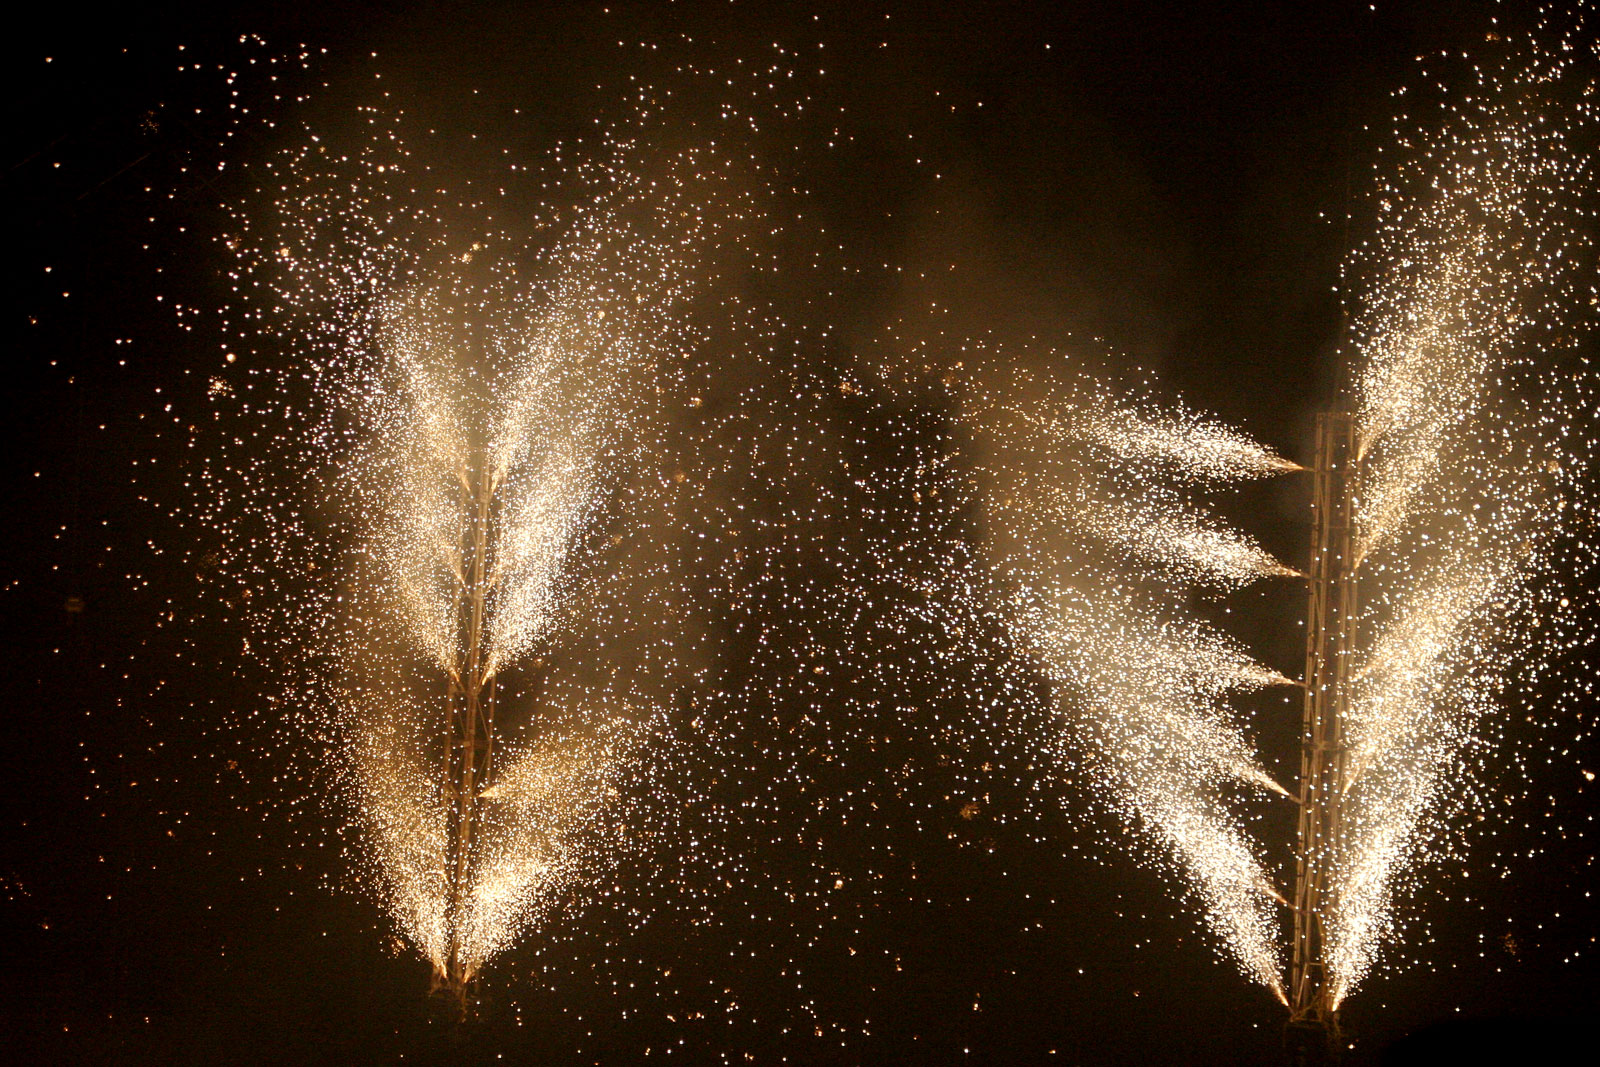 Falling Gold Sparkles Wallpaper Pyrotechnics Wikiwand